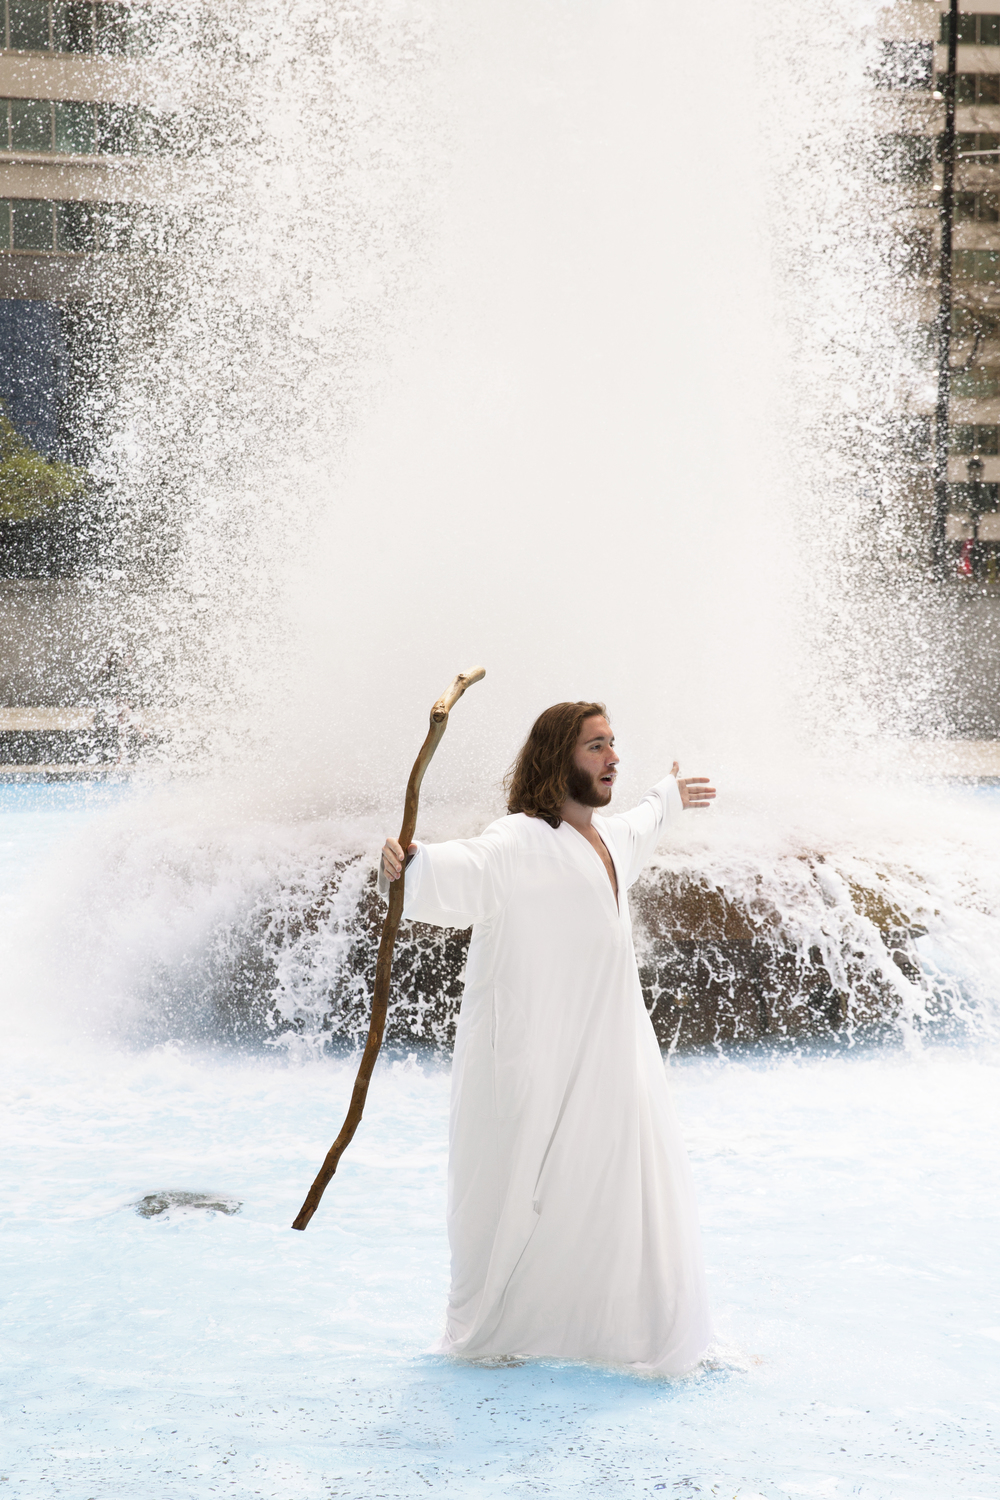 "Michael ""Philly Jesus"" Grant demonstrates his (in)ability to walk on water in Philadelphia's Love Park fountain on April 17, 2015."